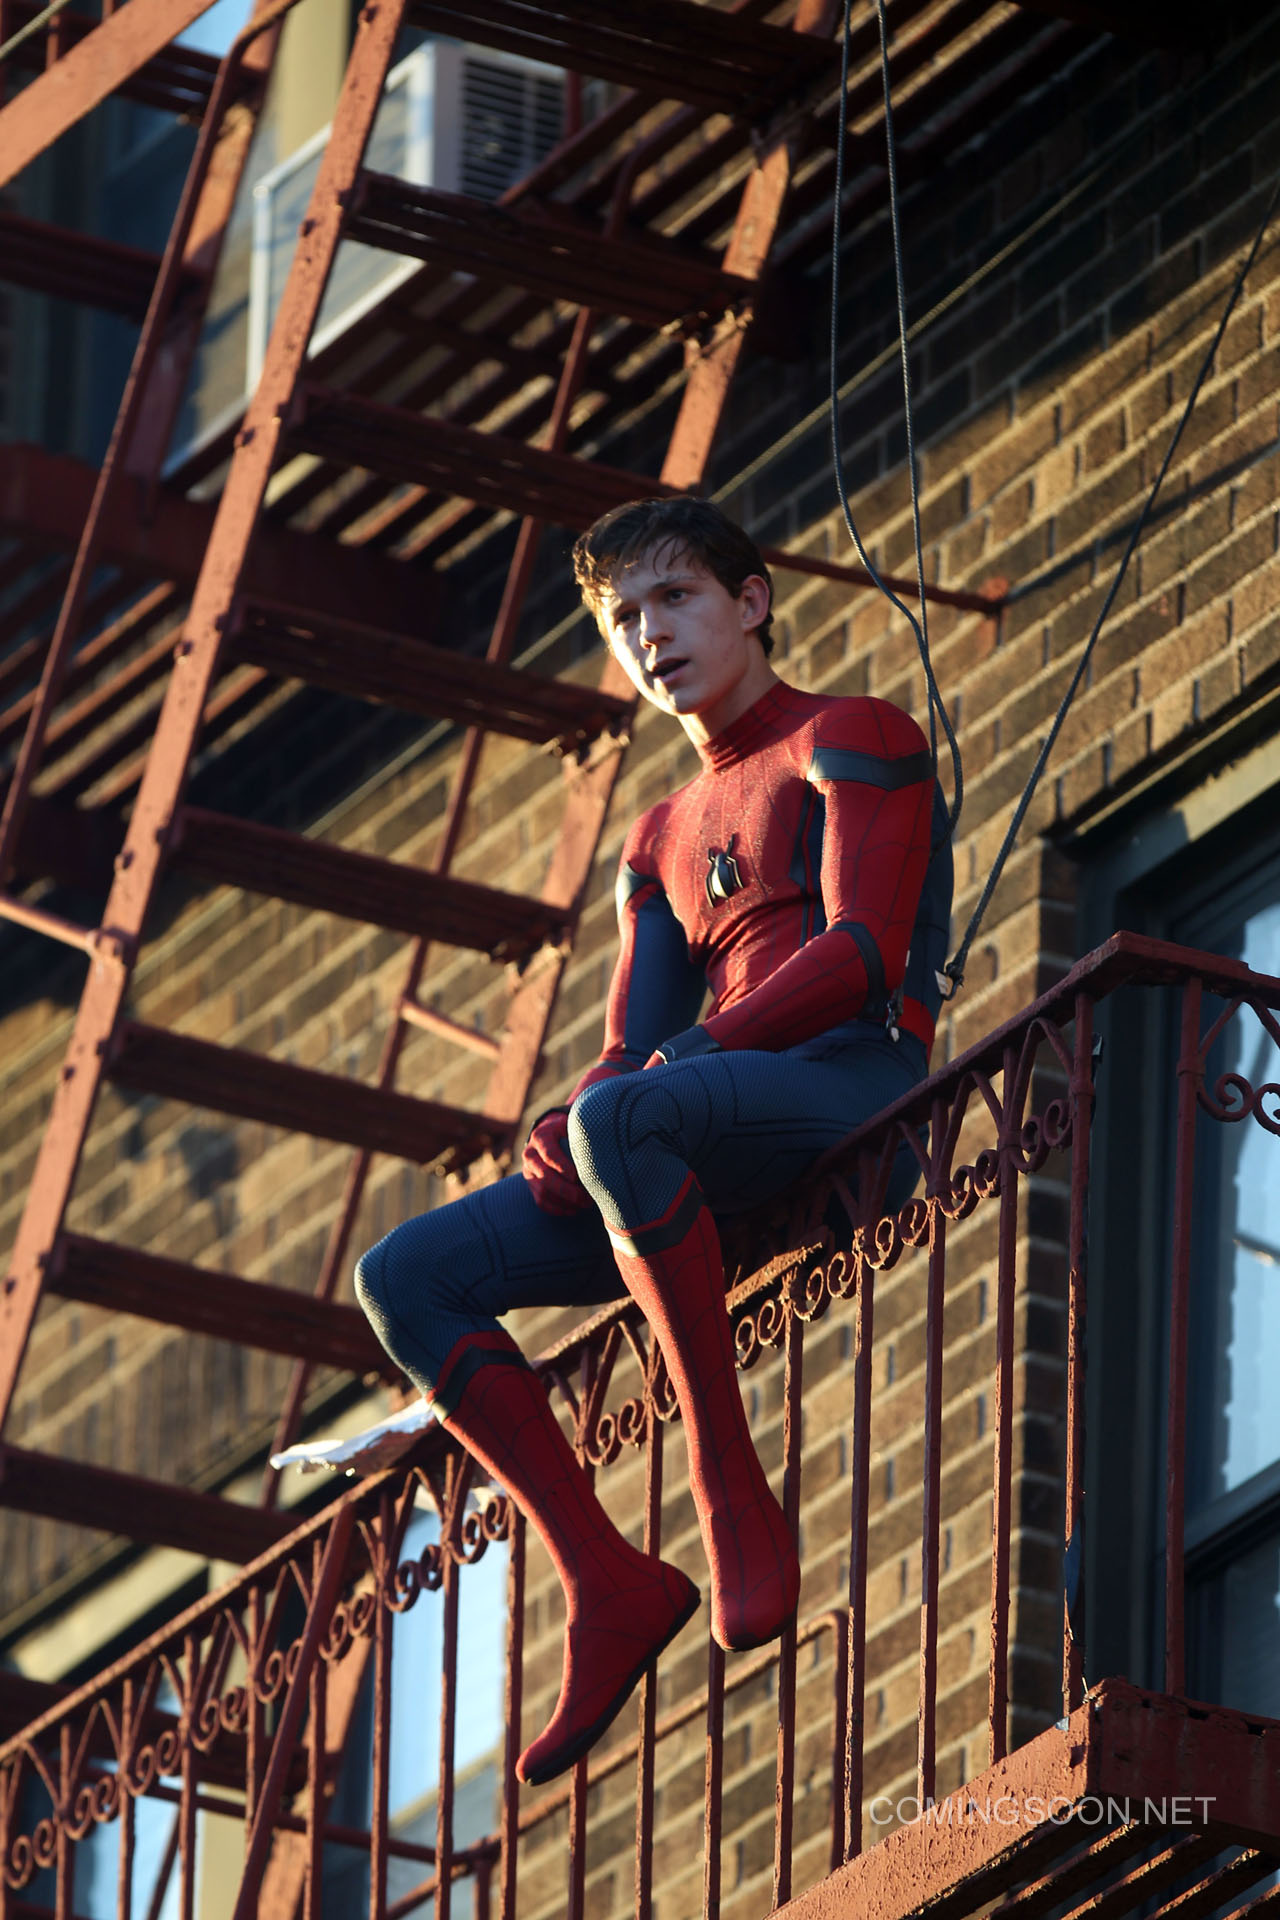 new photos from the spider man filming in new york